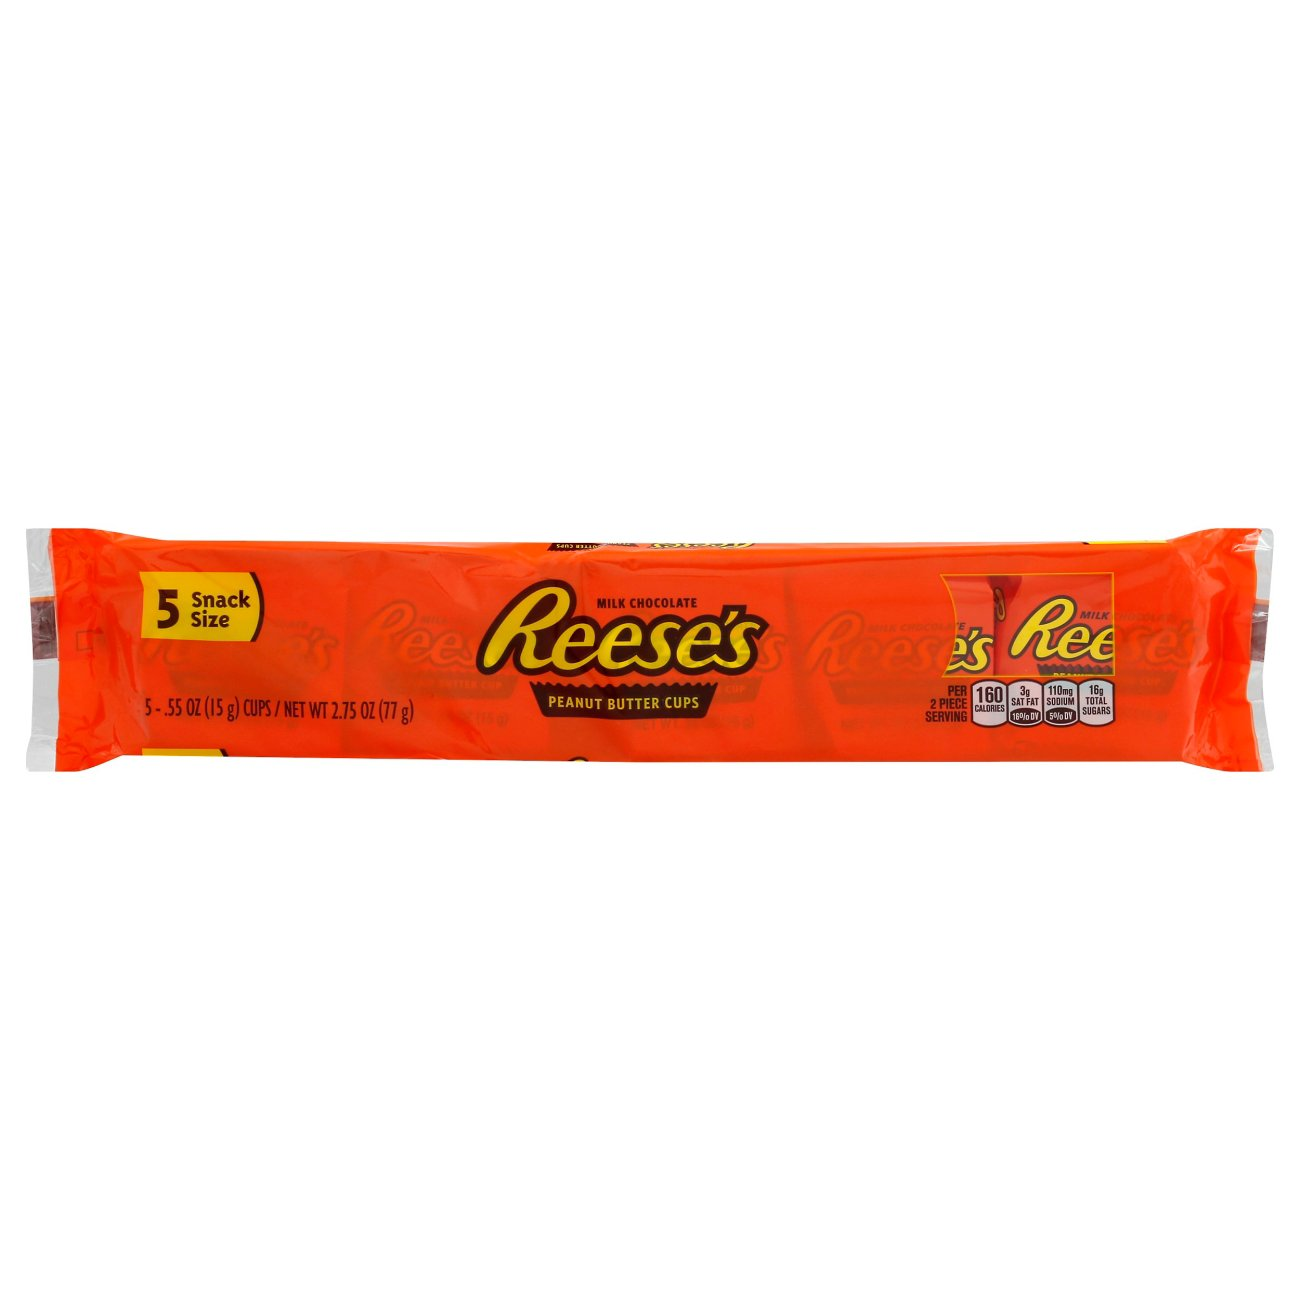 Snack Size Peanut Butter Cups, 5 ct